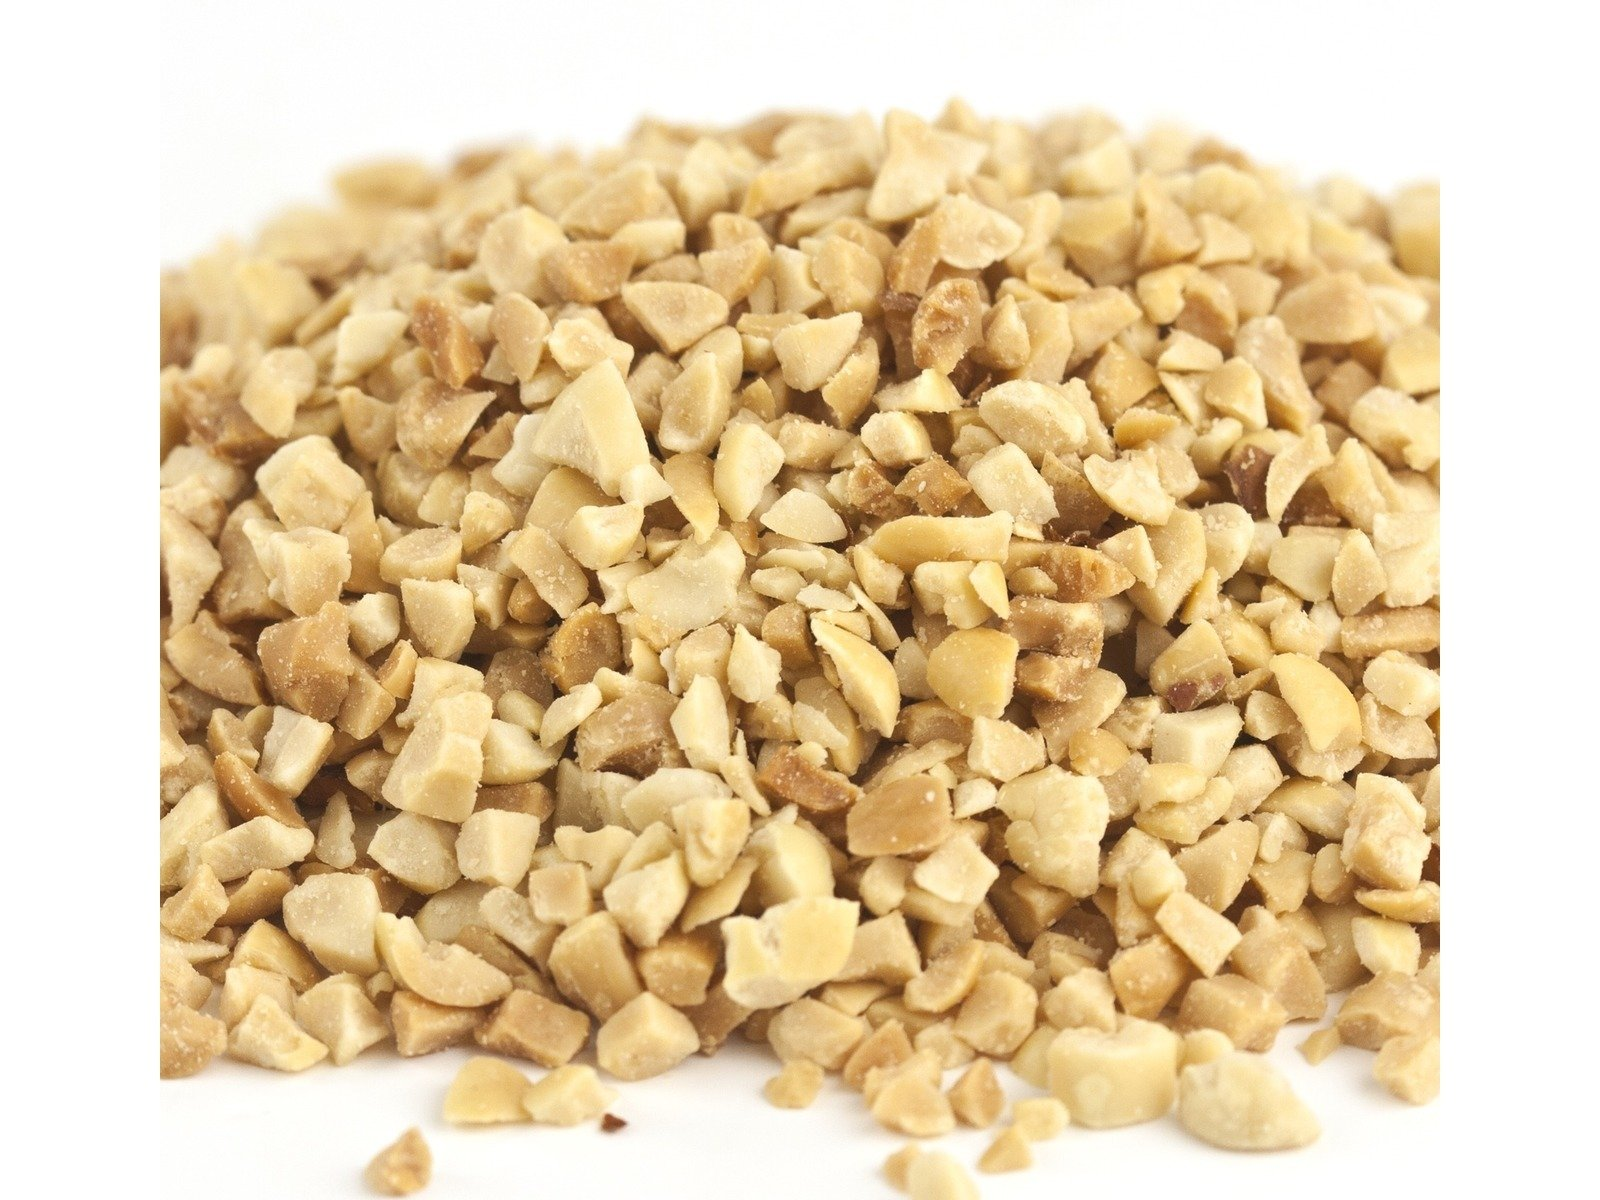 Yankee Traders Brand, Dry Roasted Peanuts, Granulated Ice Cream Topping - 1 Pound Bag